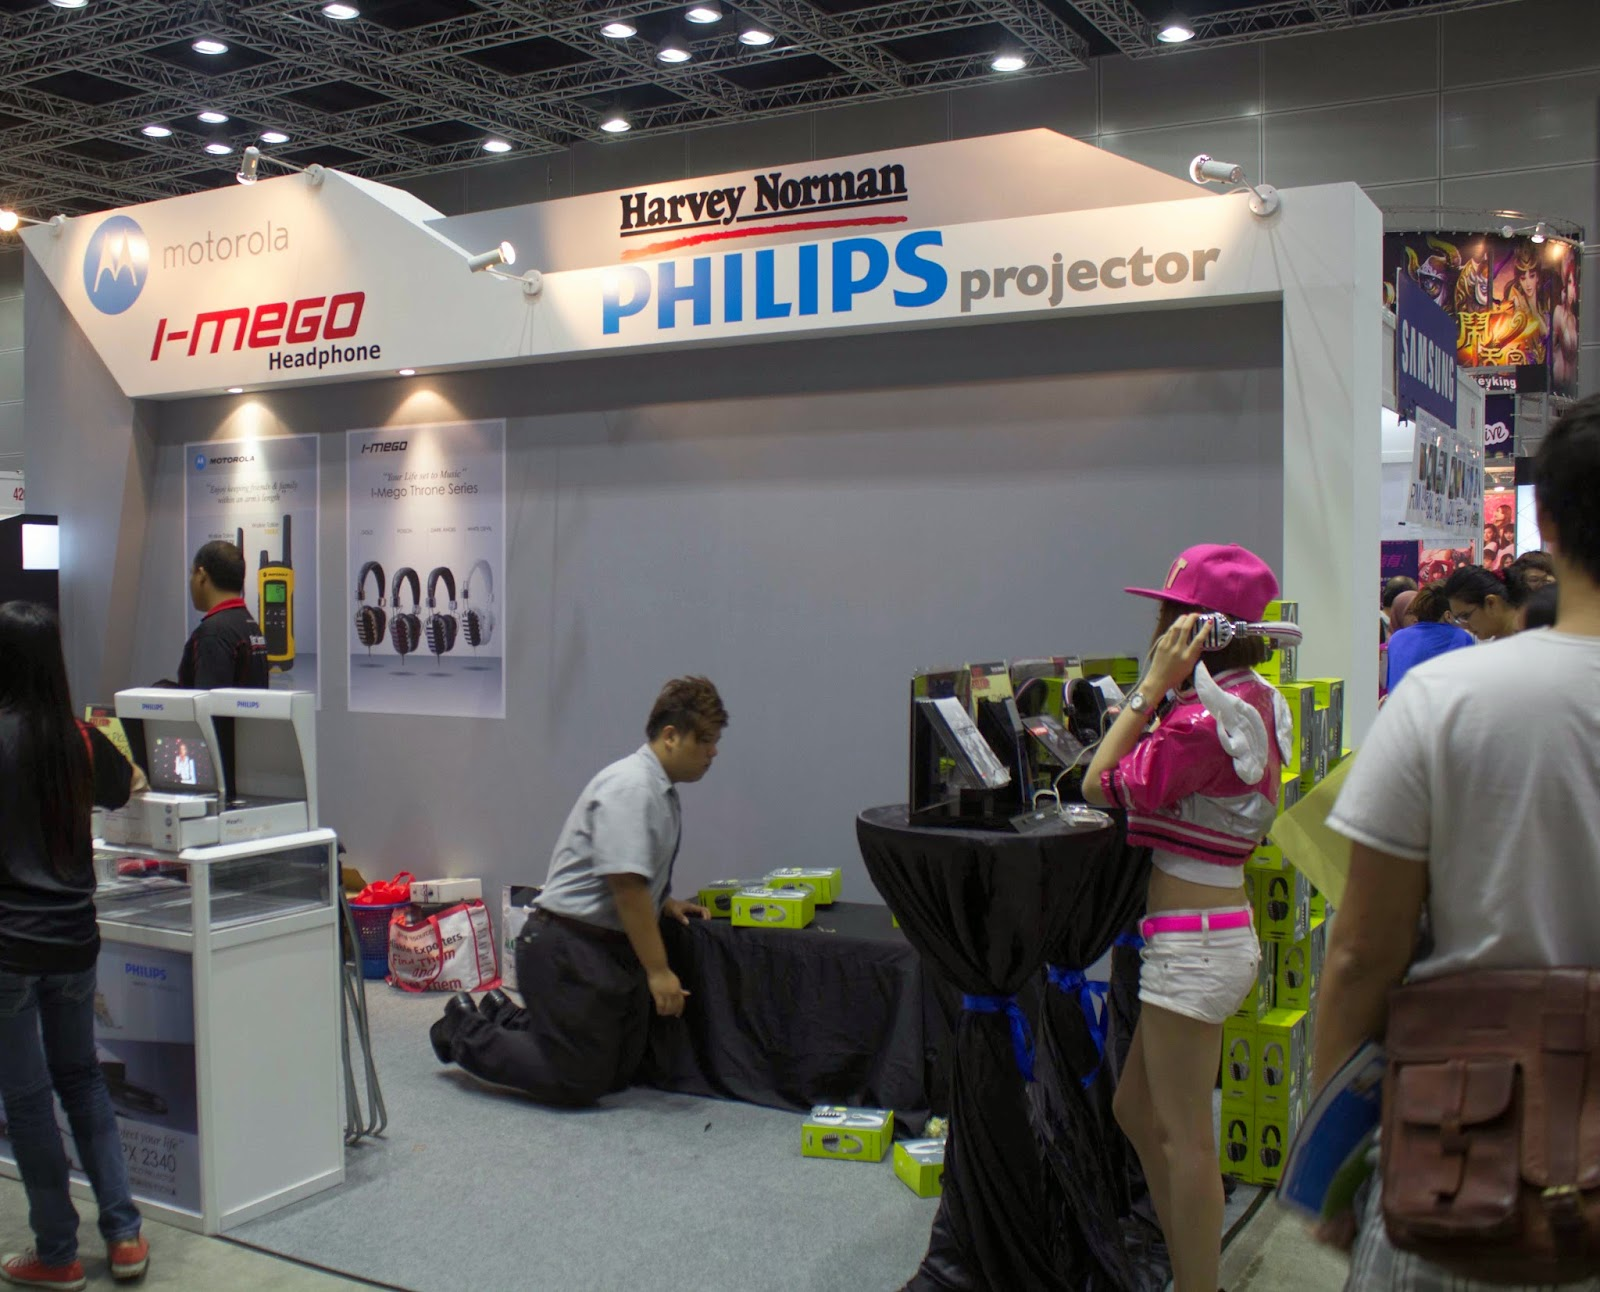 Coverage of PIKOM PC Fair 2014 @ Kuala Lumpur Convention Center 388